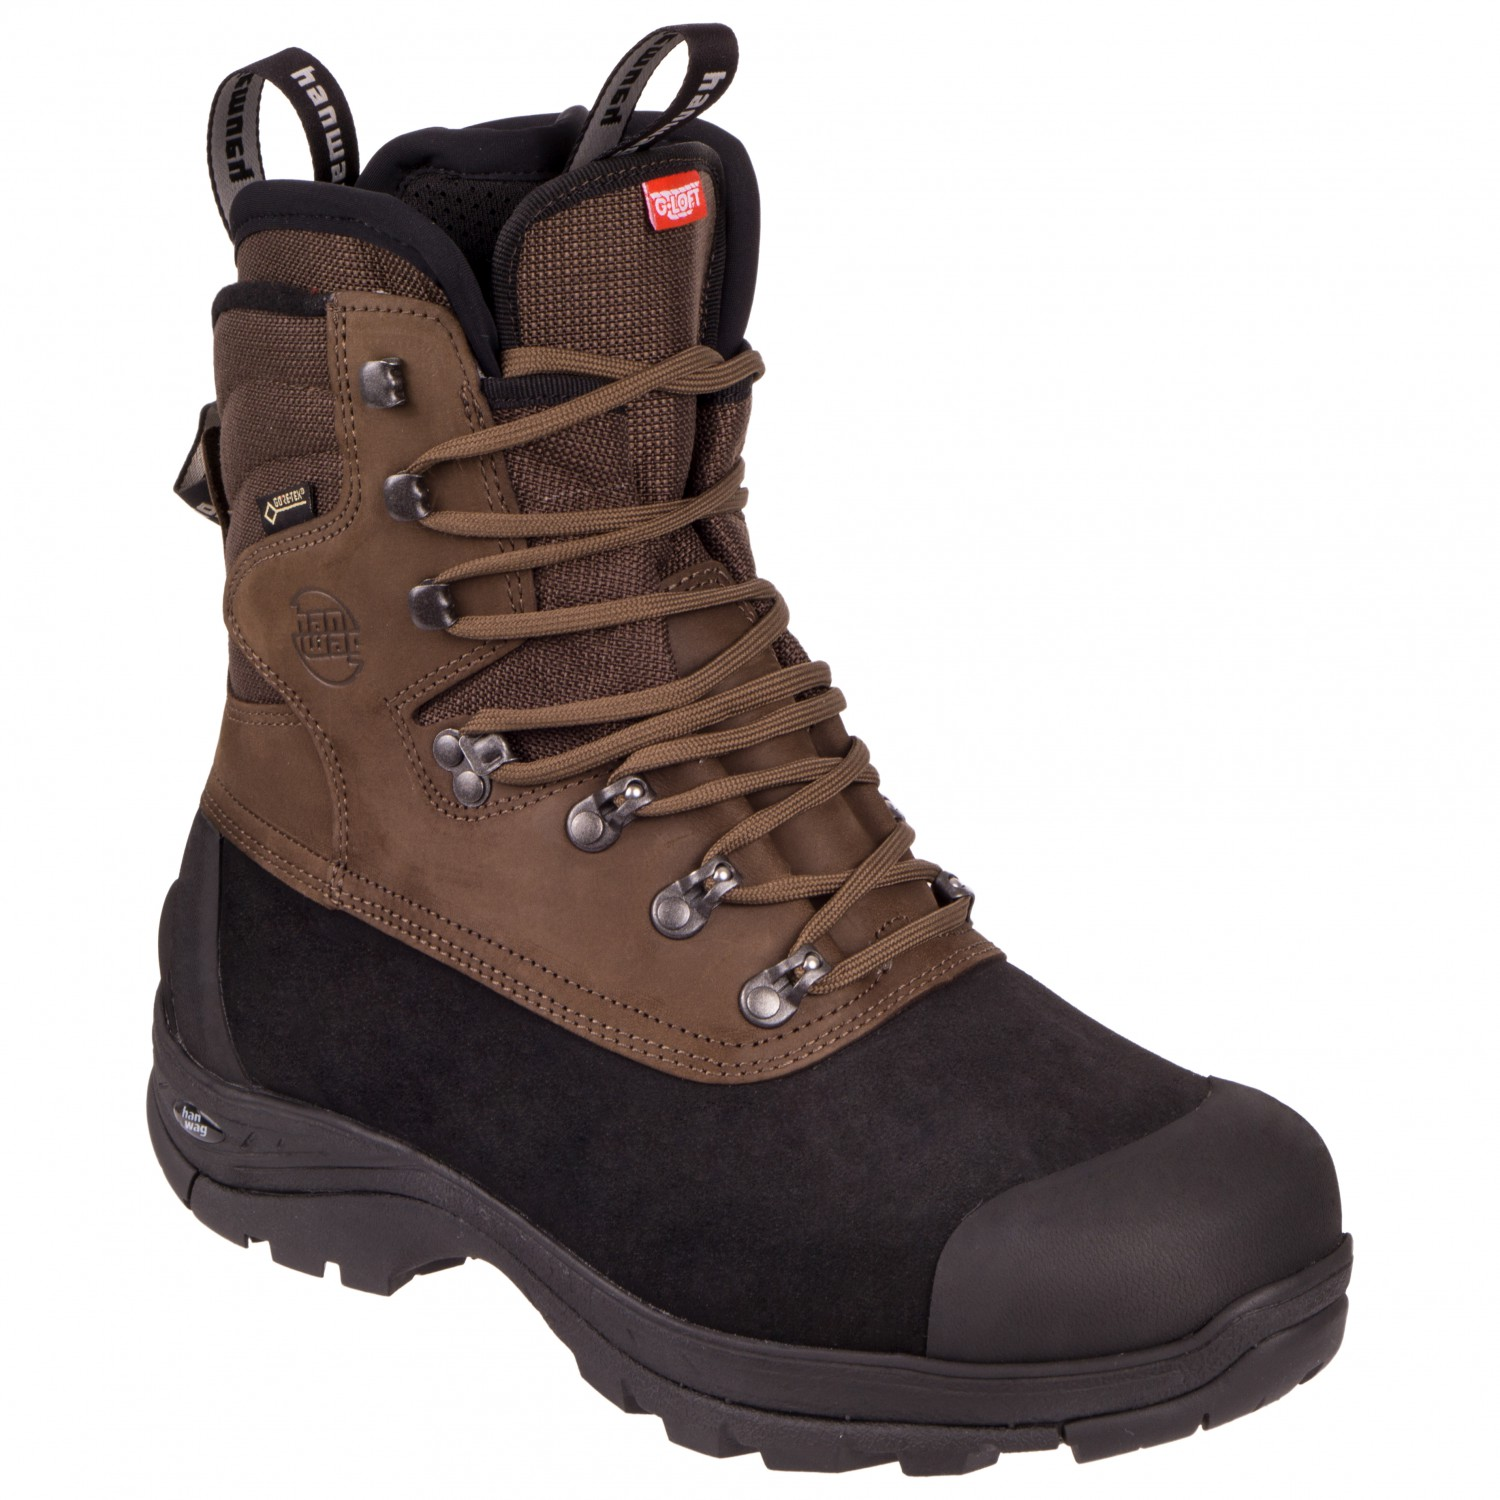 015a515fee4 Hanwag - Fjäll Extreme GTX - Winter boots